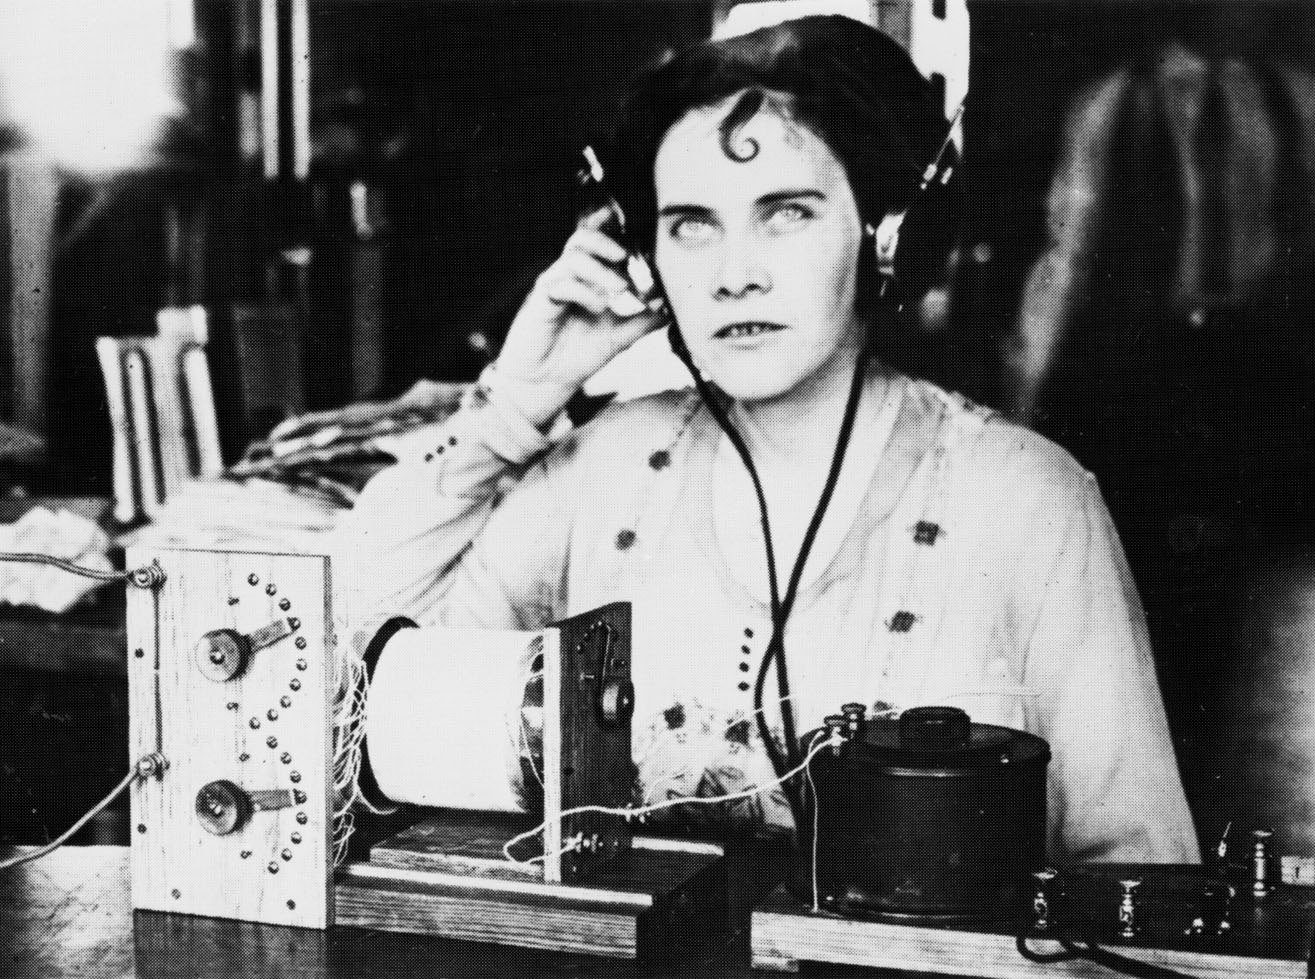 old photo of a woman with a headset on listening to an ancient-looking radio